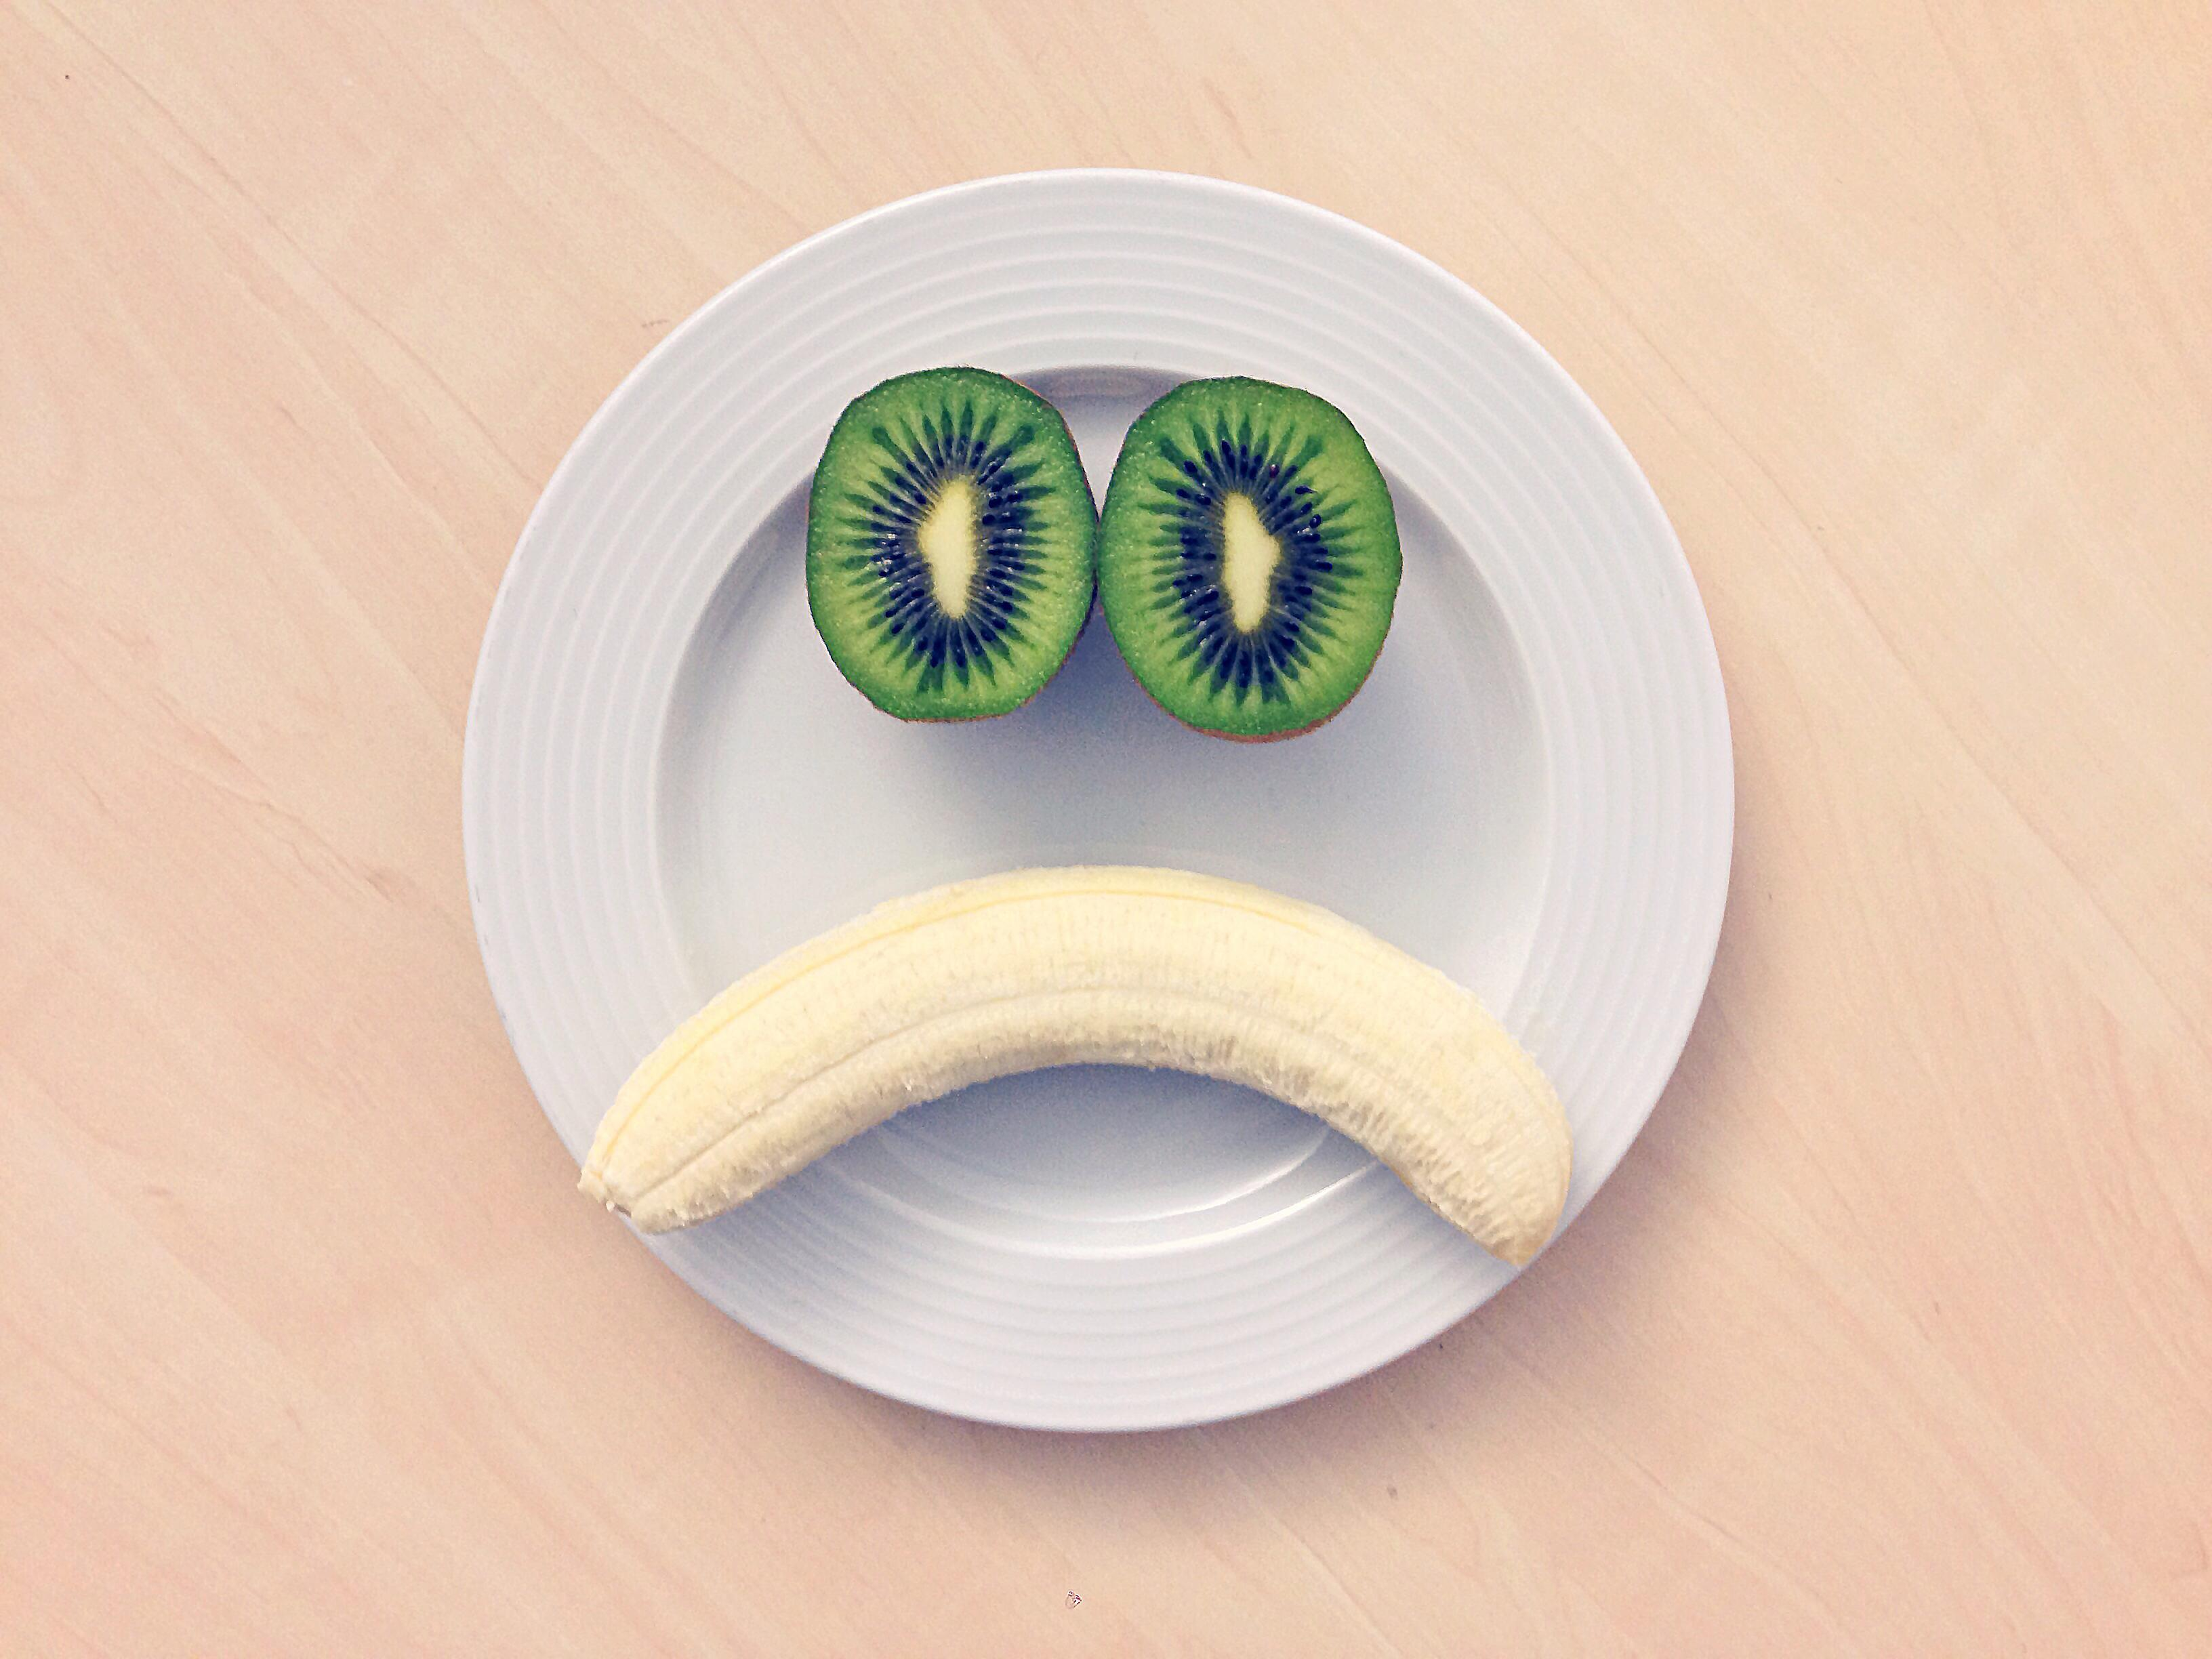 Diet face: What is it and how do you prevent it?